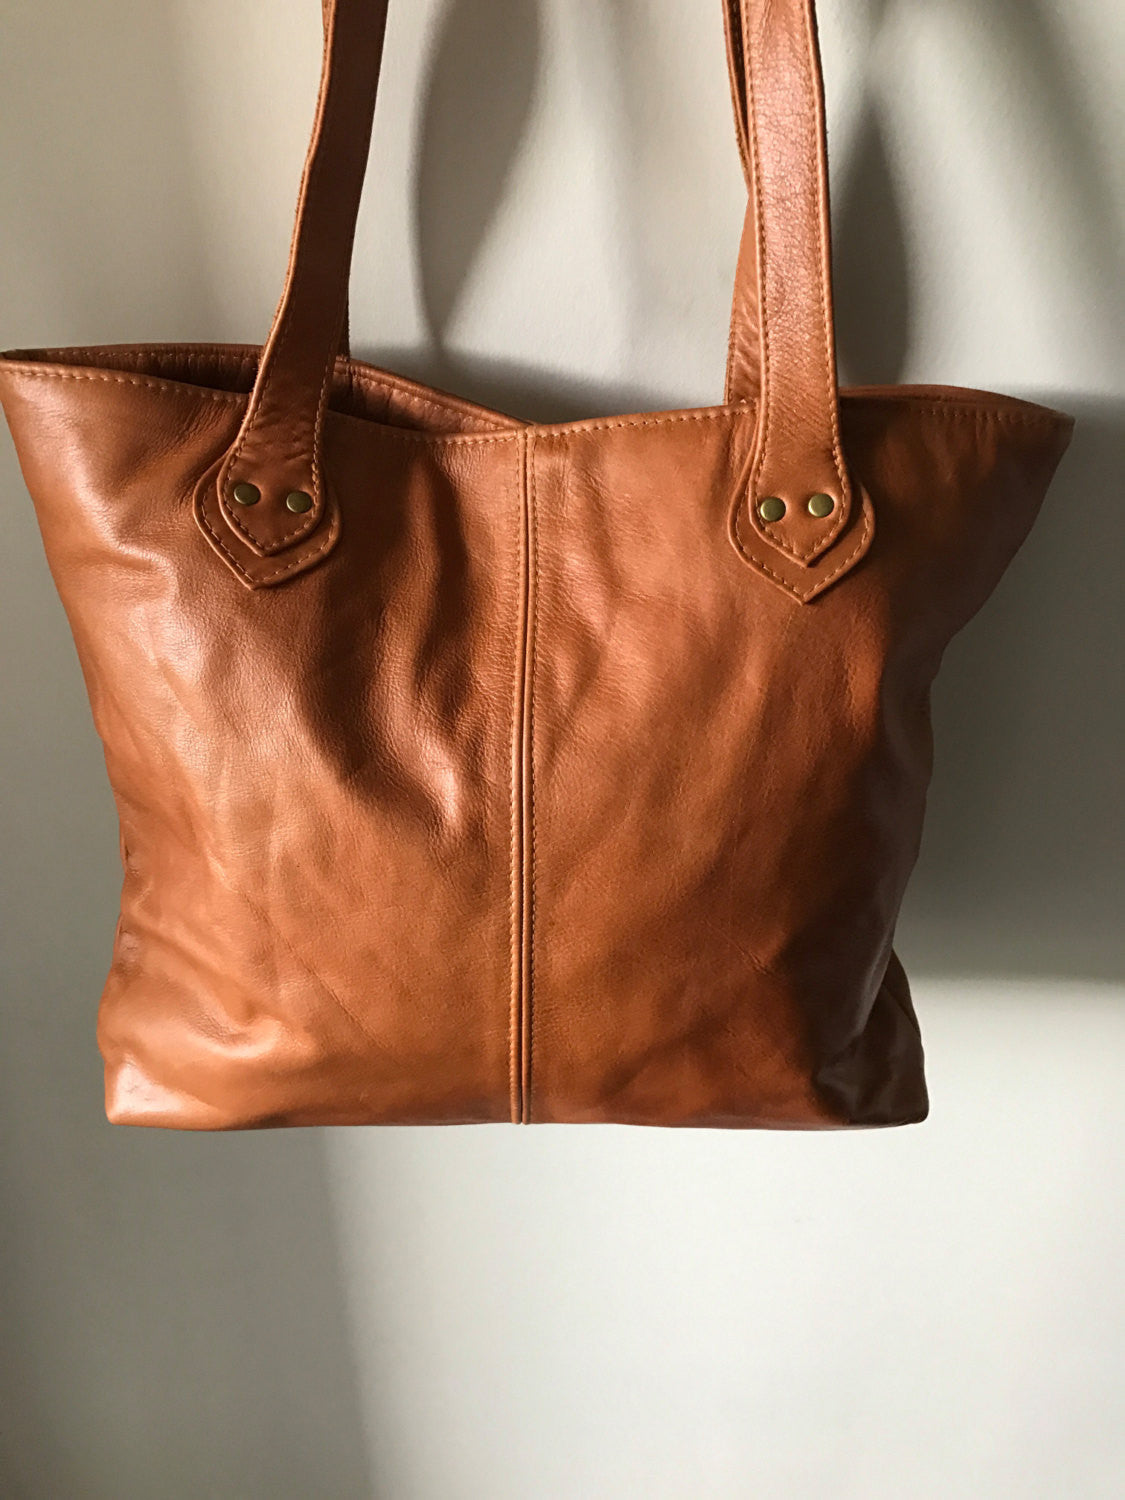 The Perfect Leather Tote Bag.Quality, shorter,shoulder bag. Real leather with long handles.This shopper is the perfect tote market bag,lined